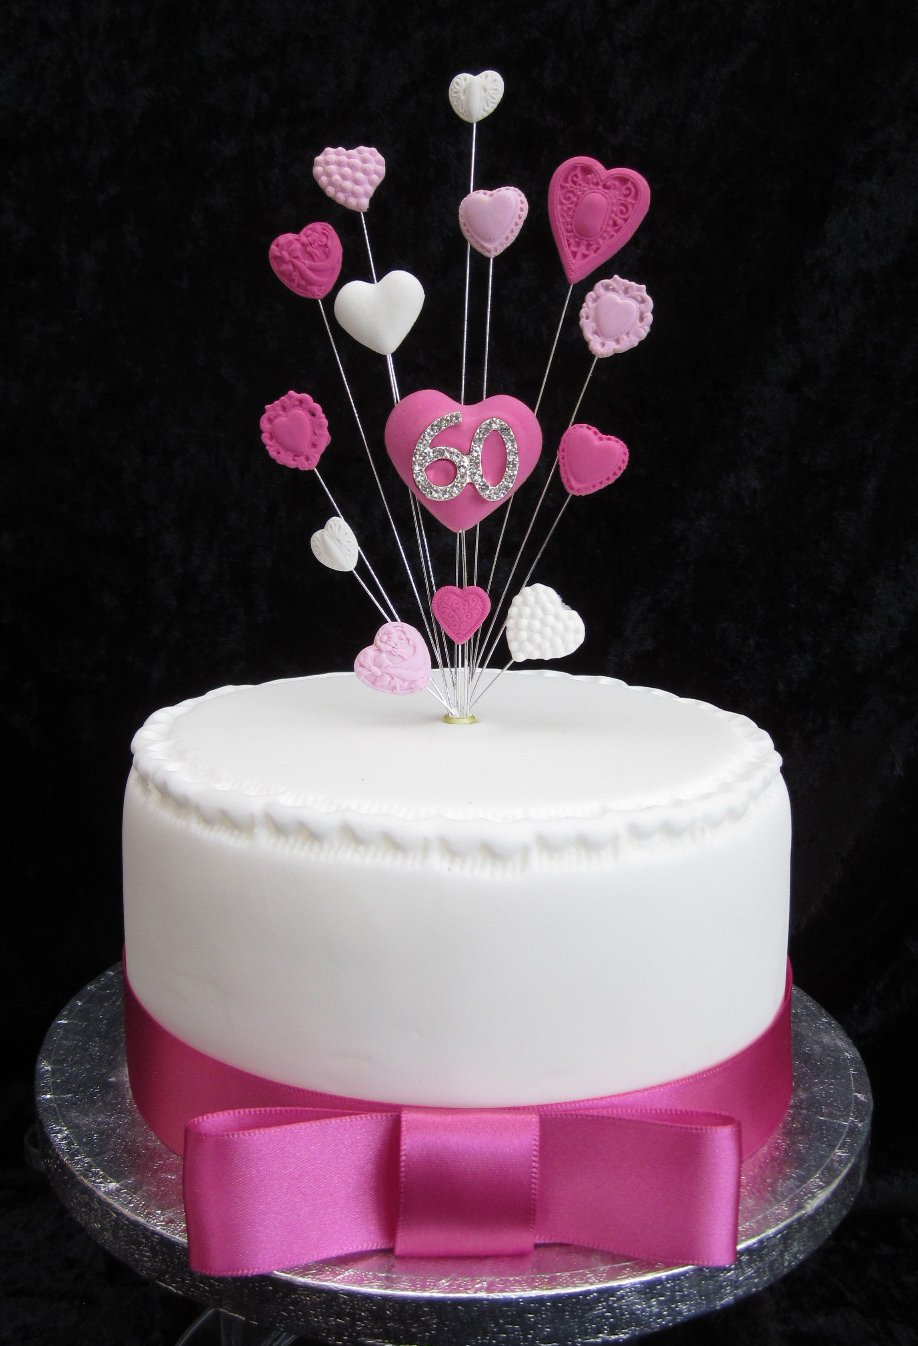 60th Birthday Cake Topper Pinks And White Hearts Suitable For A